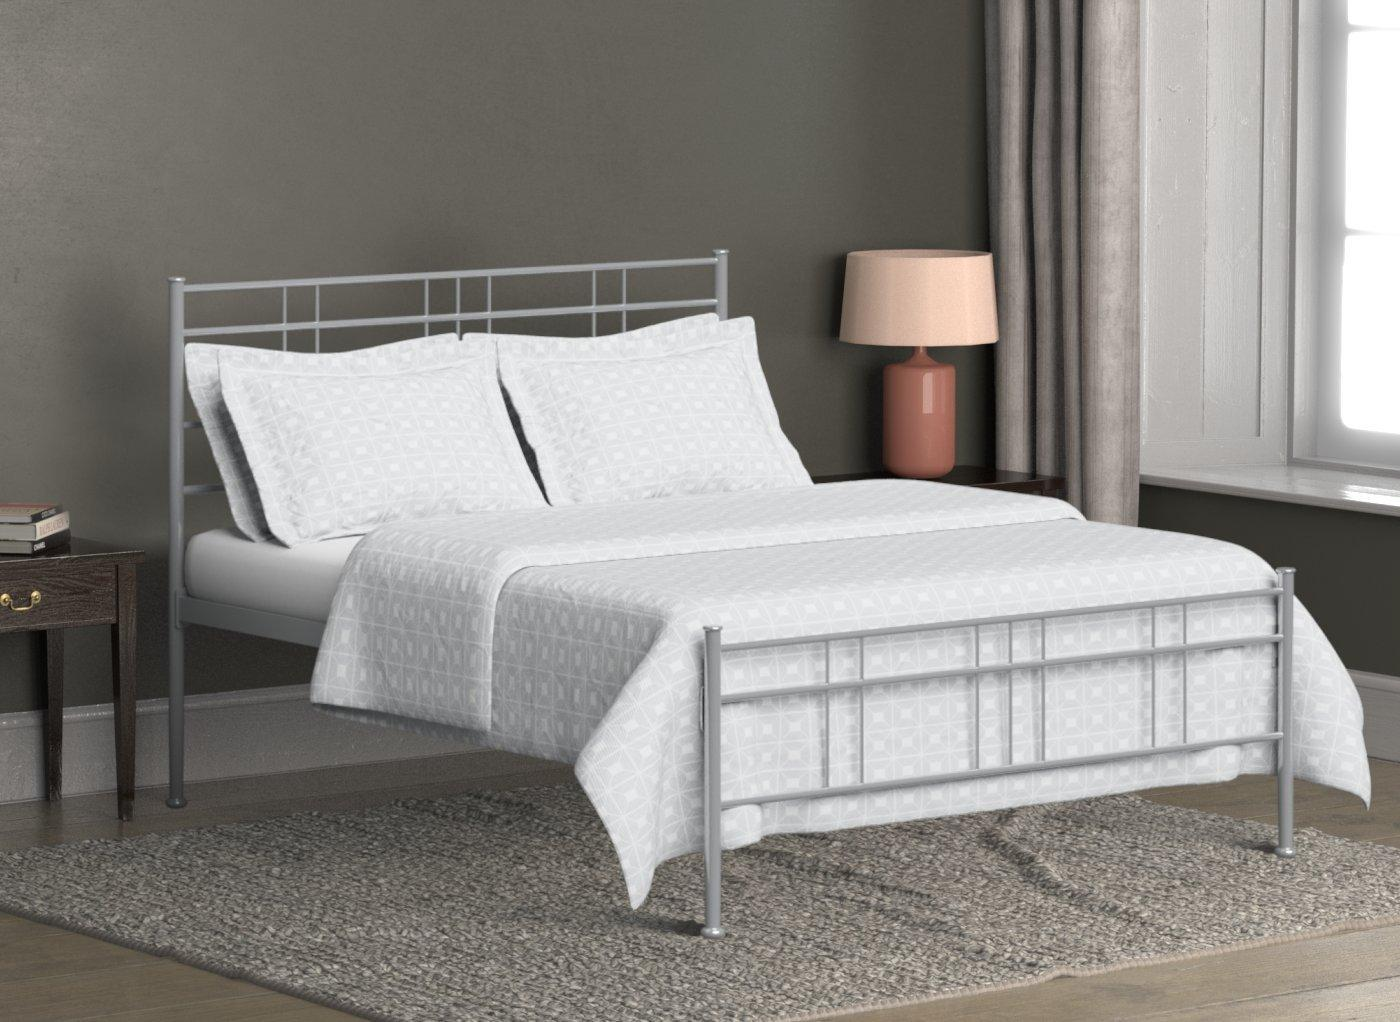 Milano Glossy Silver Metal Bed Frame 4'0 Small double